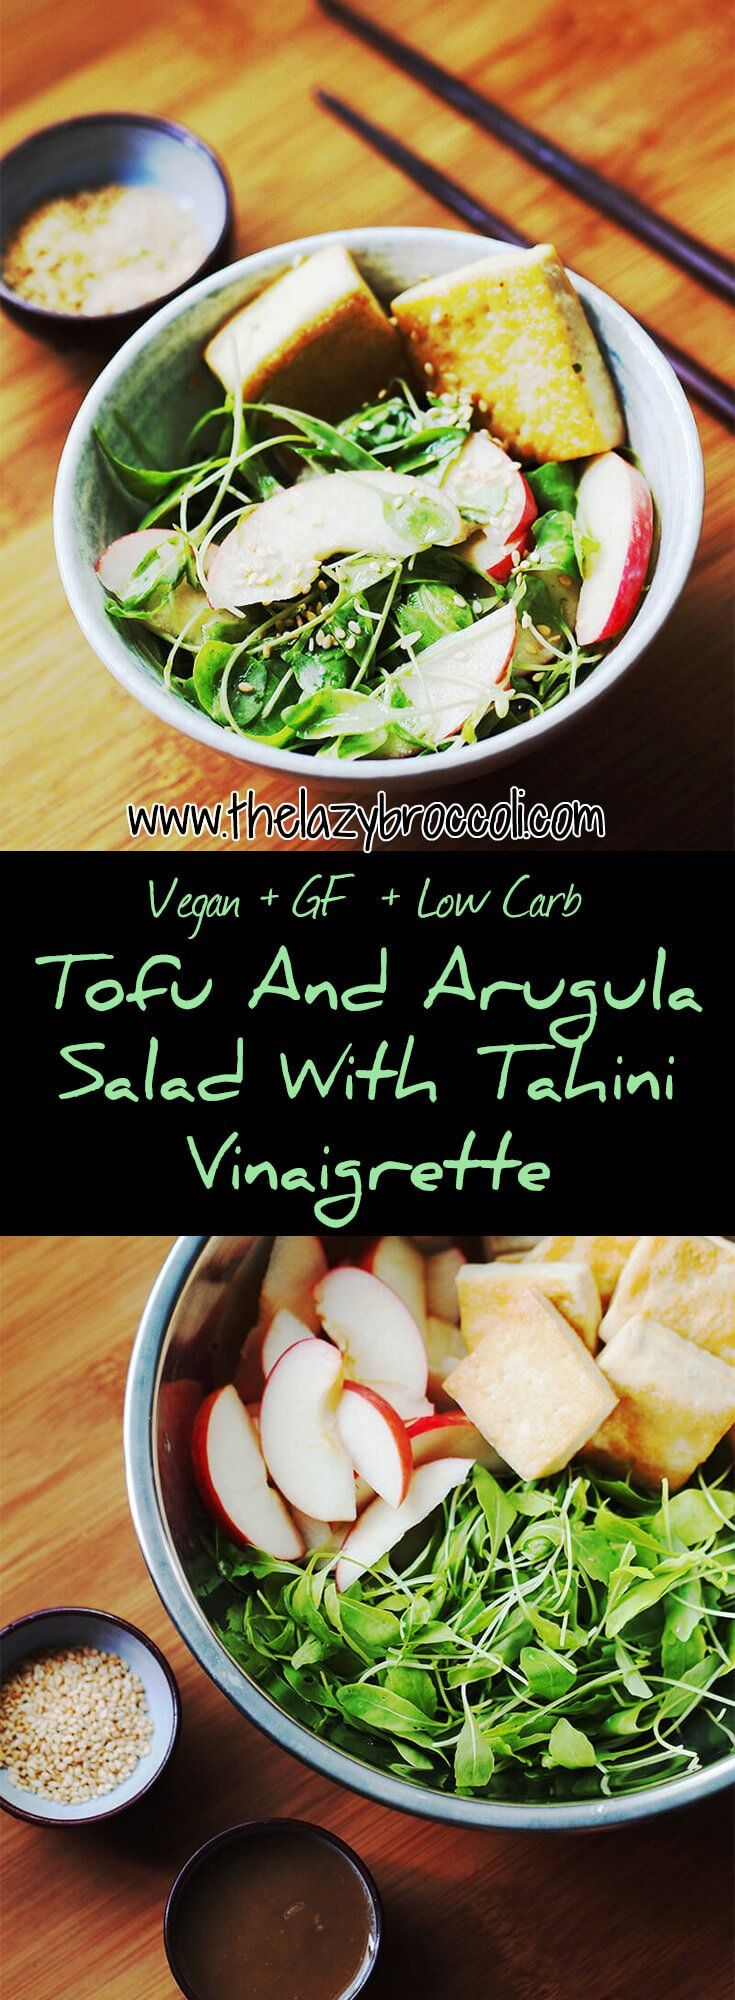 Easy, not boring, and delicious tofu + apples + arugula salad mix, topped with a tahini vinaigrette! Yum! #vegan #vegetarian #salad #arugula #tofu #apple #tahini #lowcarb #glutenfree